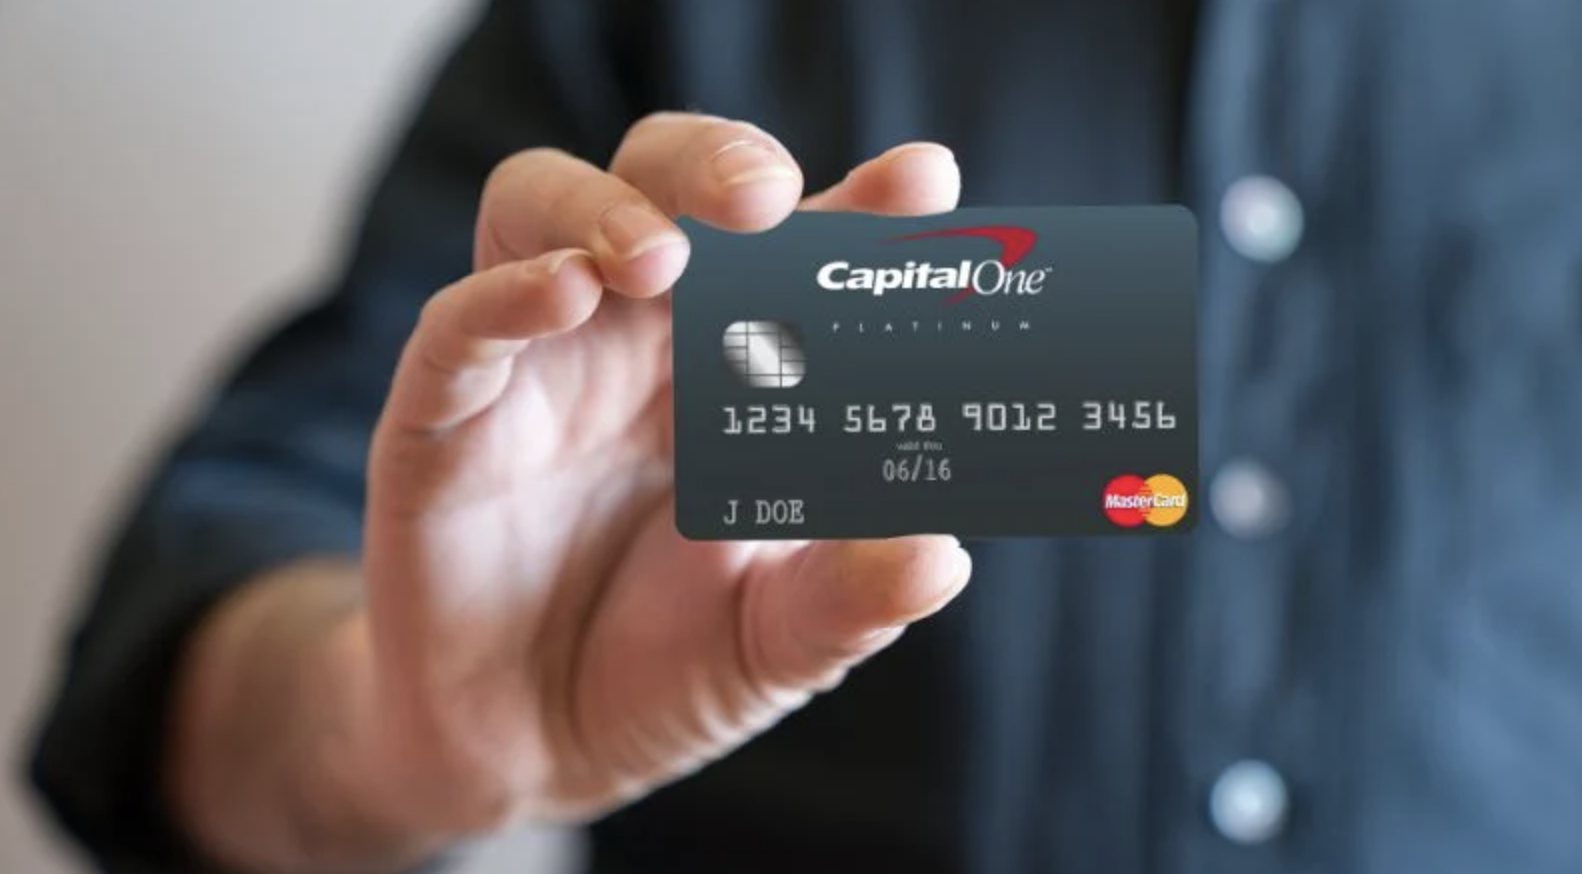 How to request the Secured Mastercard®️ credit card from Capital